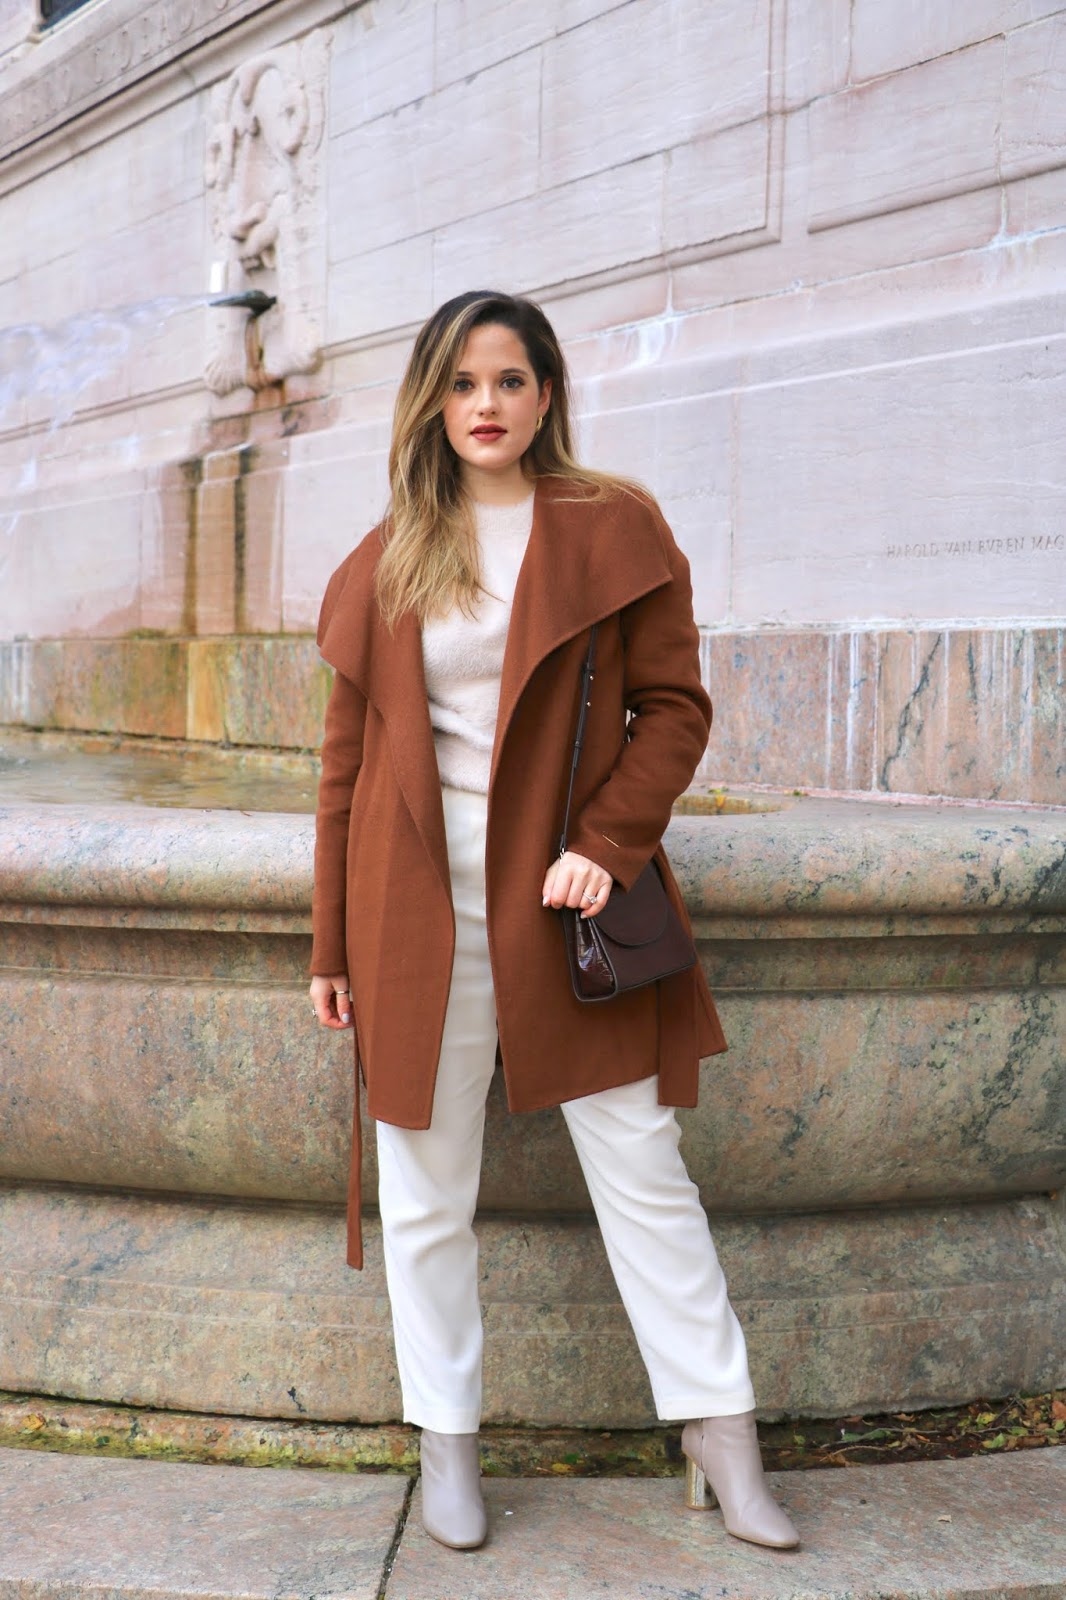 Nyc fashion influencer Kathleen Harper wearing a monochrome fall outfit.